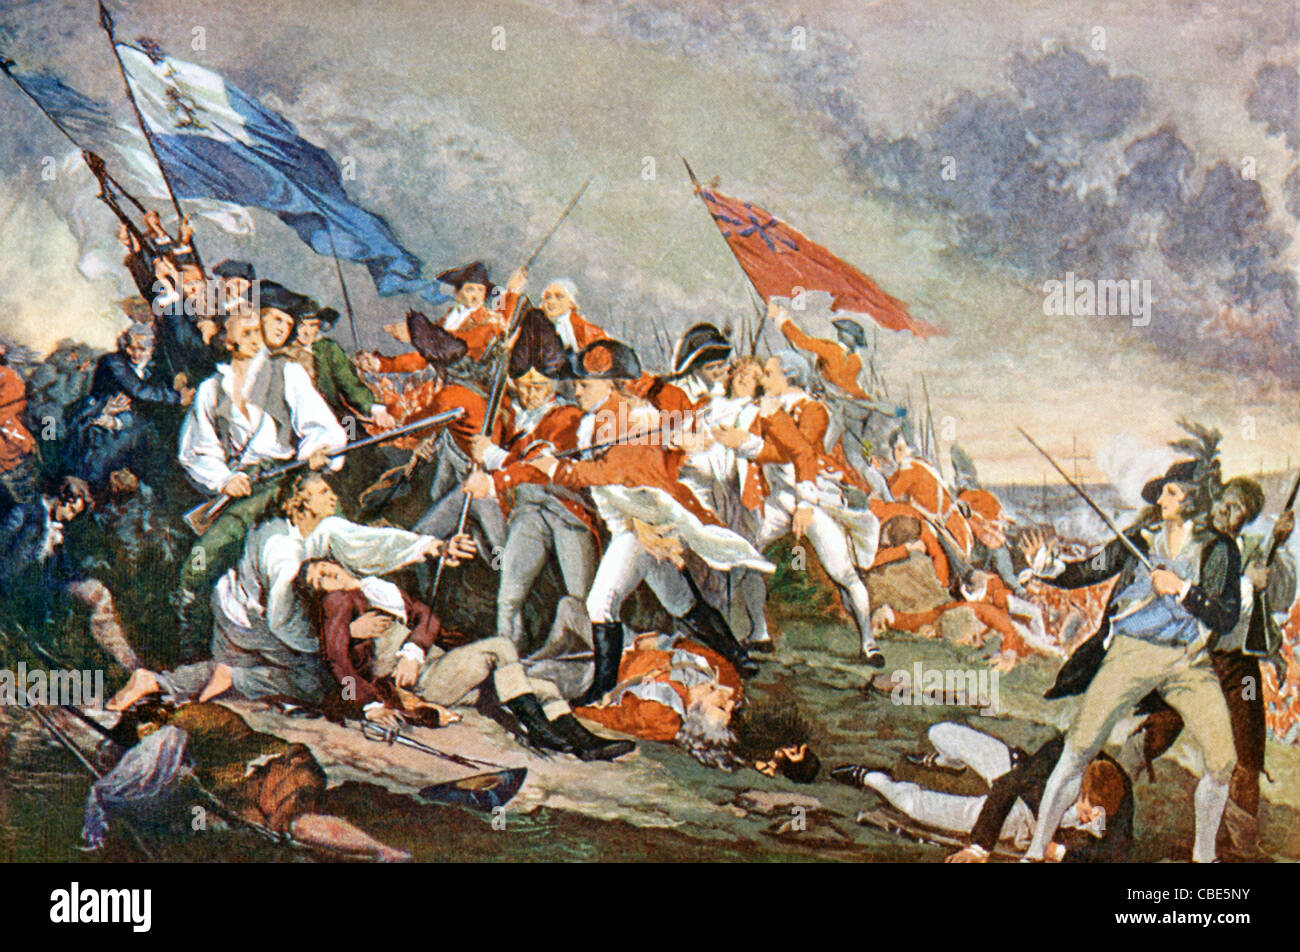 The Battle of Bunker Hill was fought on nearby Breed's Hill on June 17, 1775. General Warren  was killed. - Stock Image